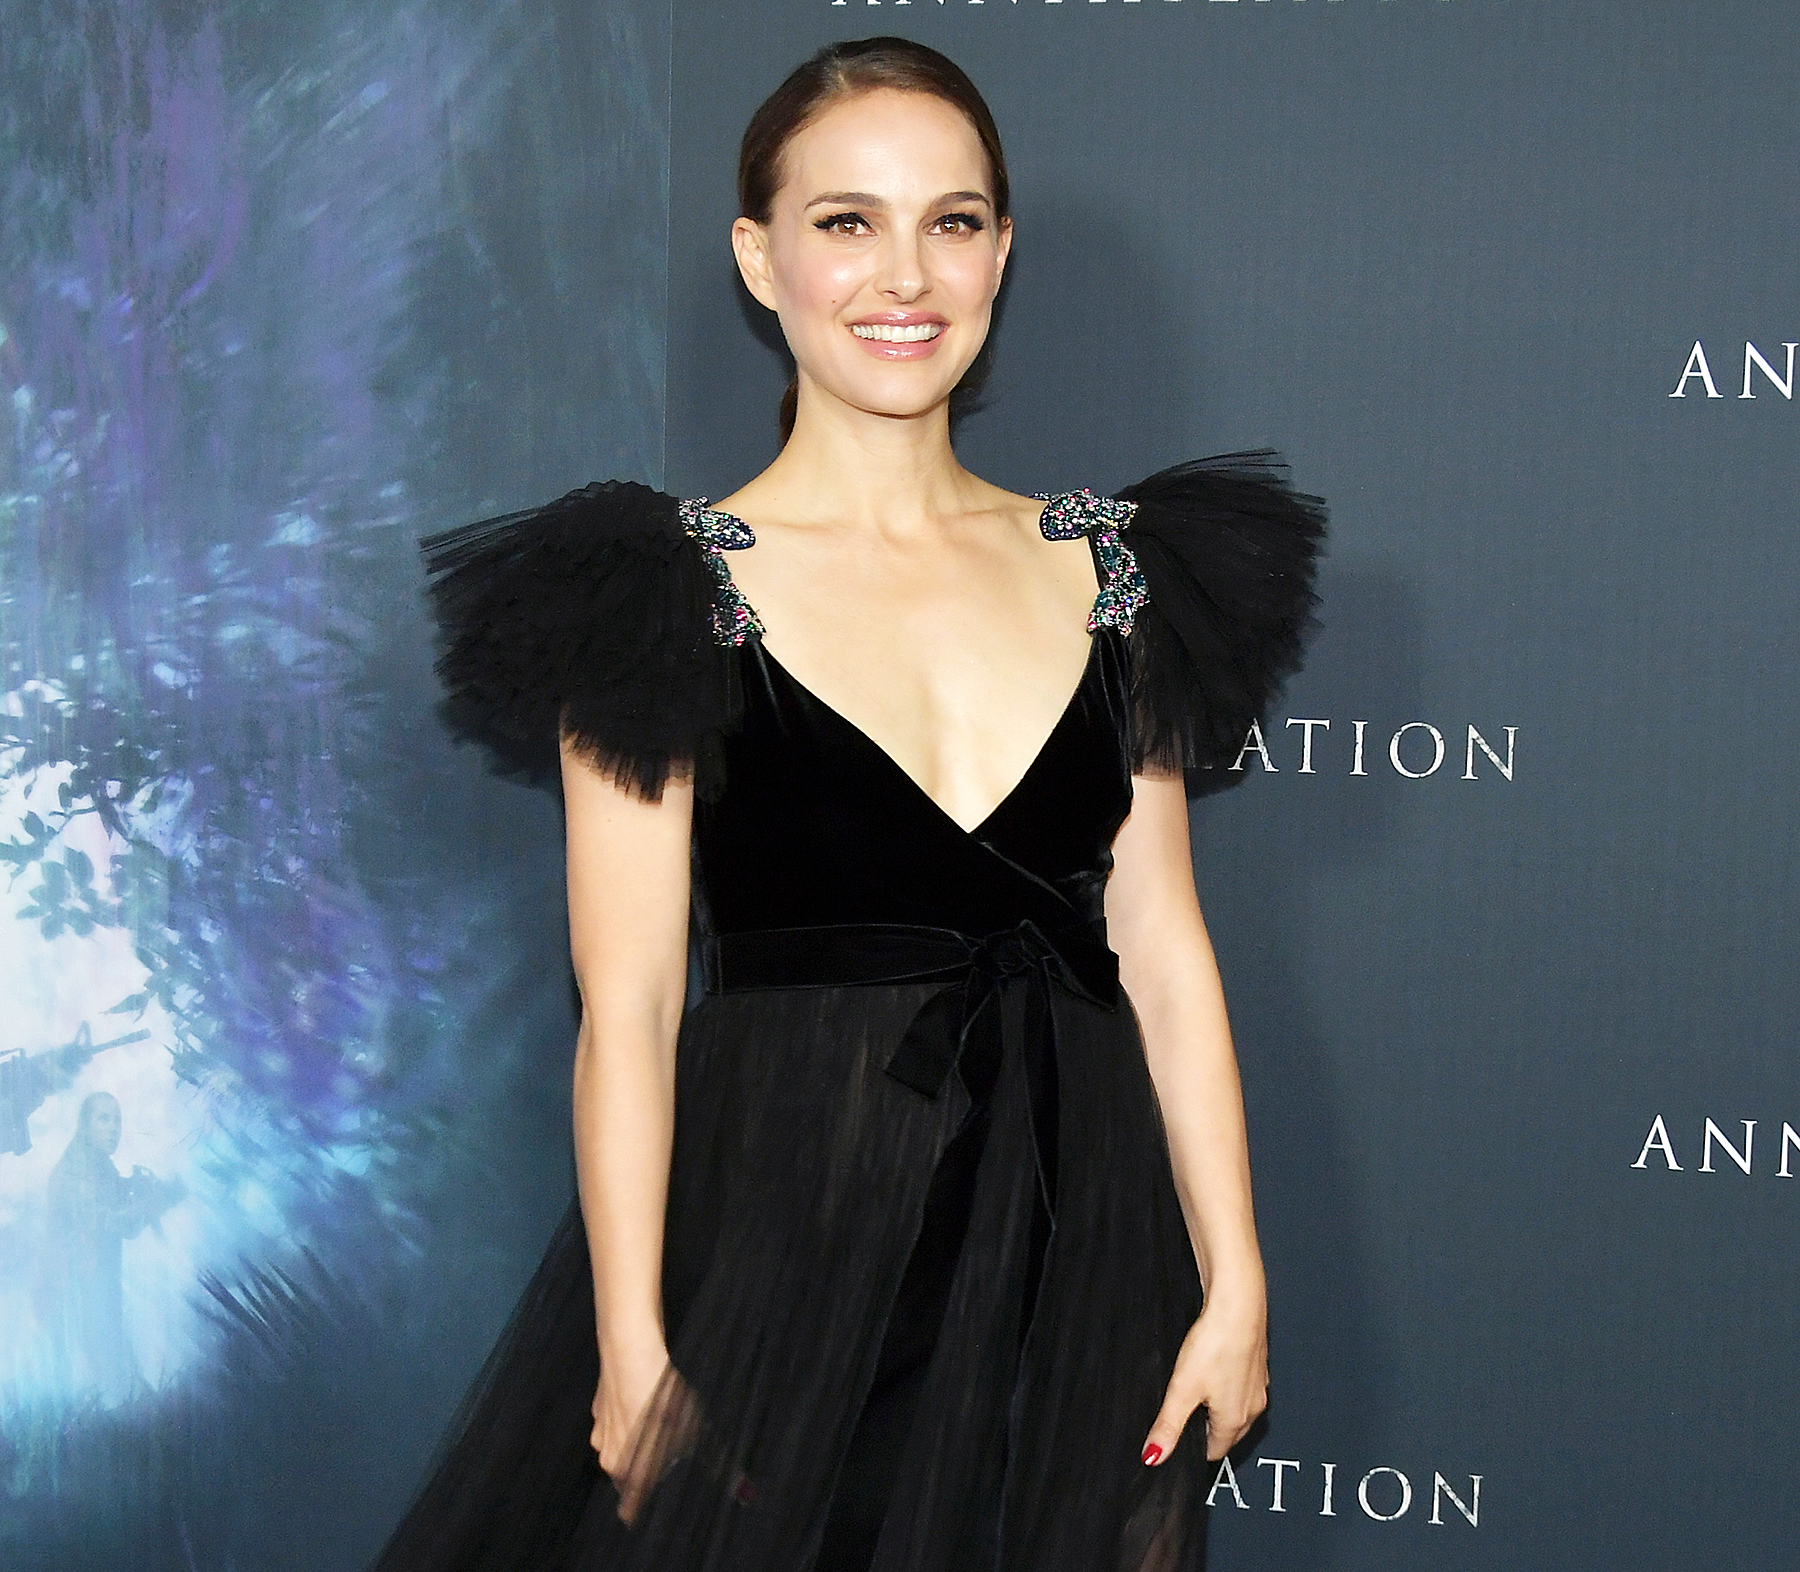 Natalie Portman regrets Polanski petition